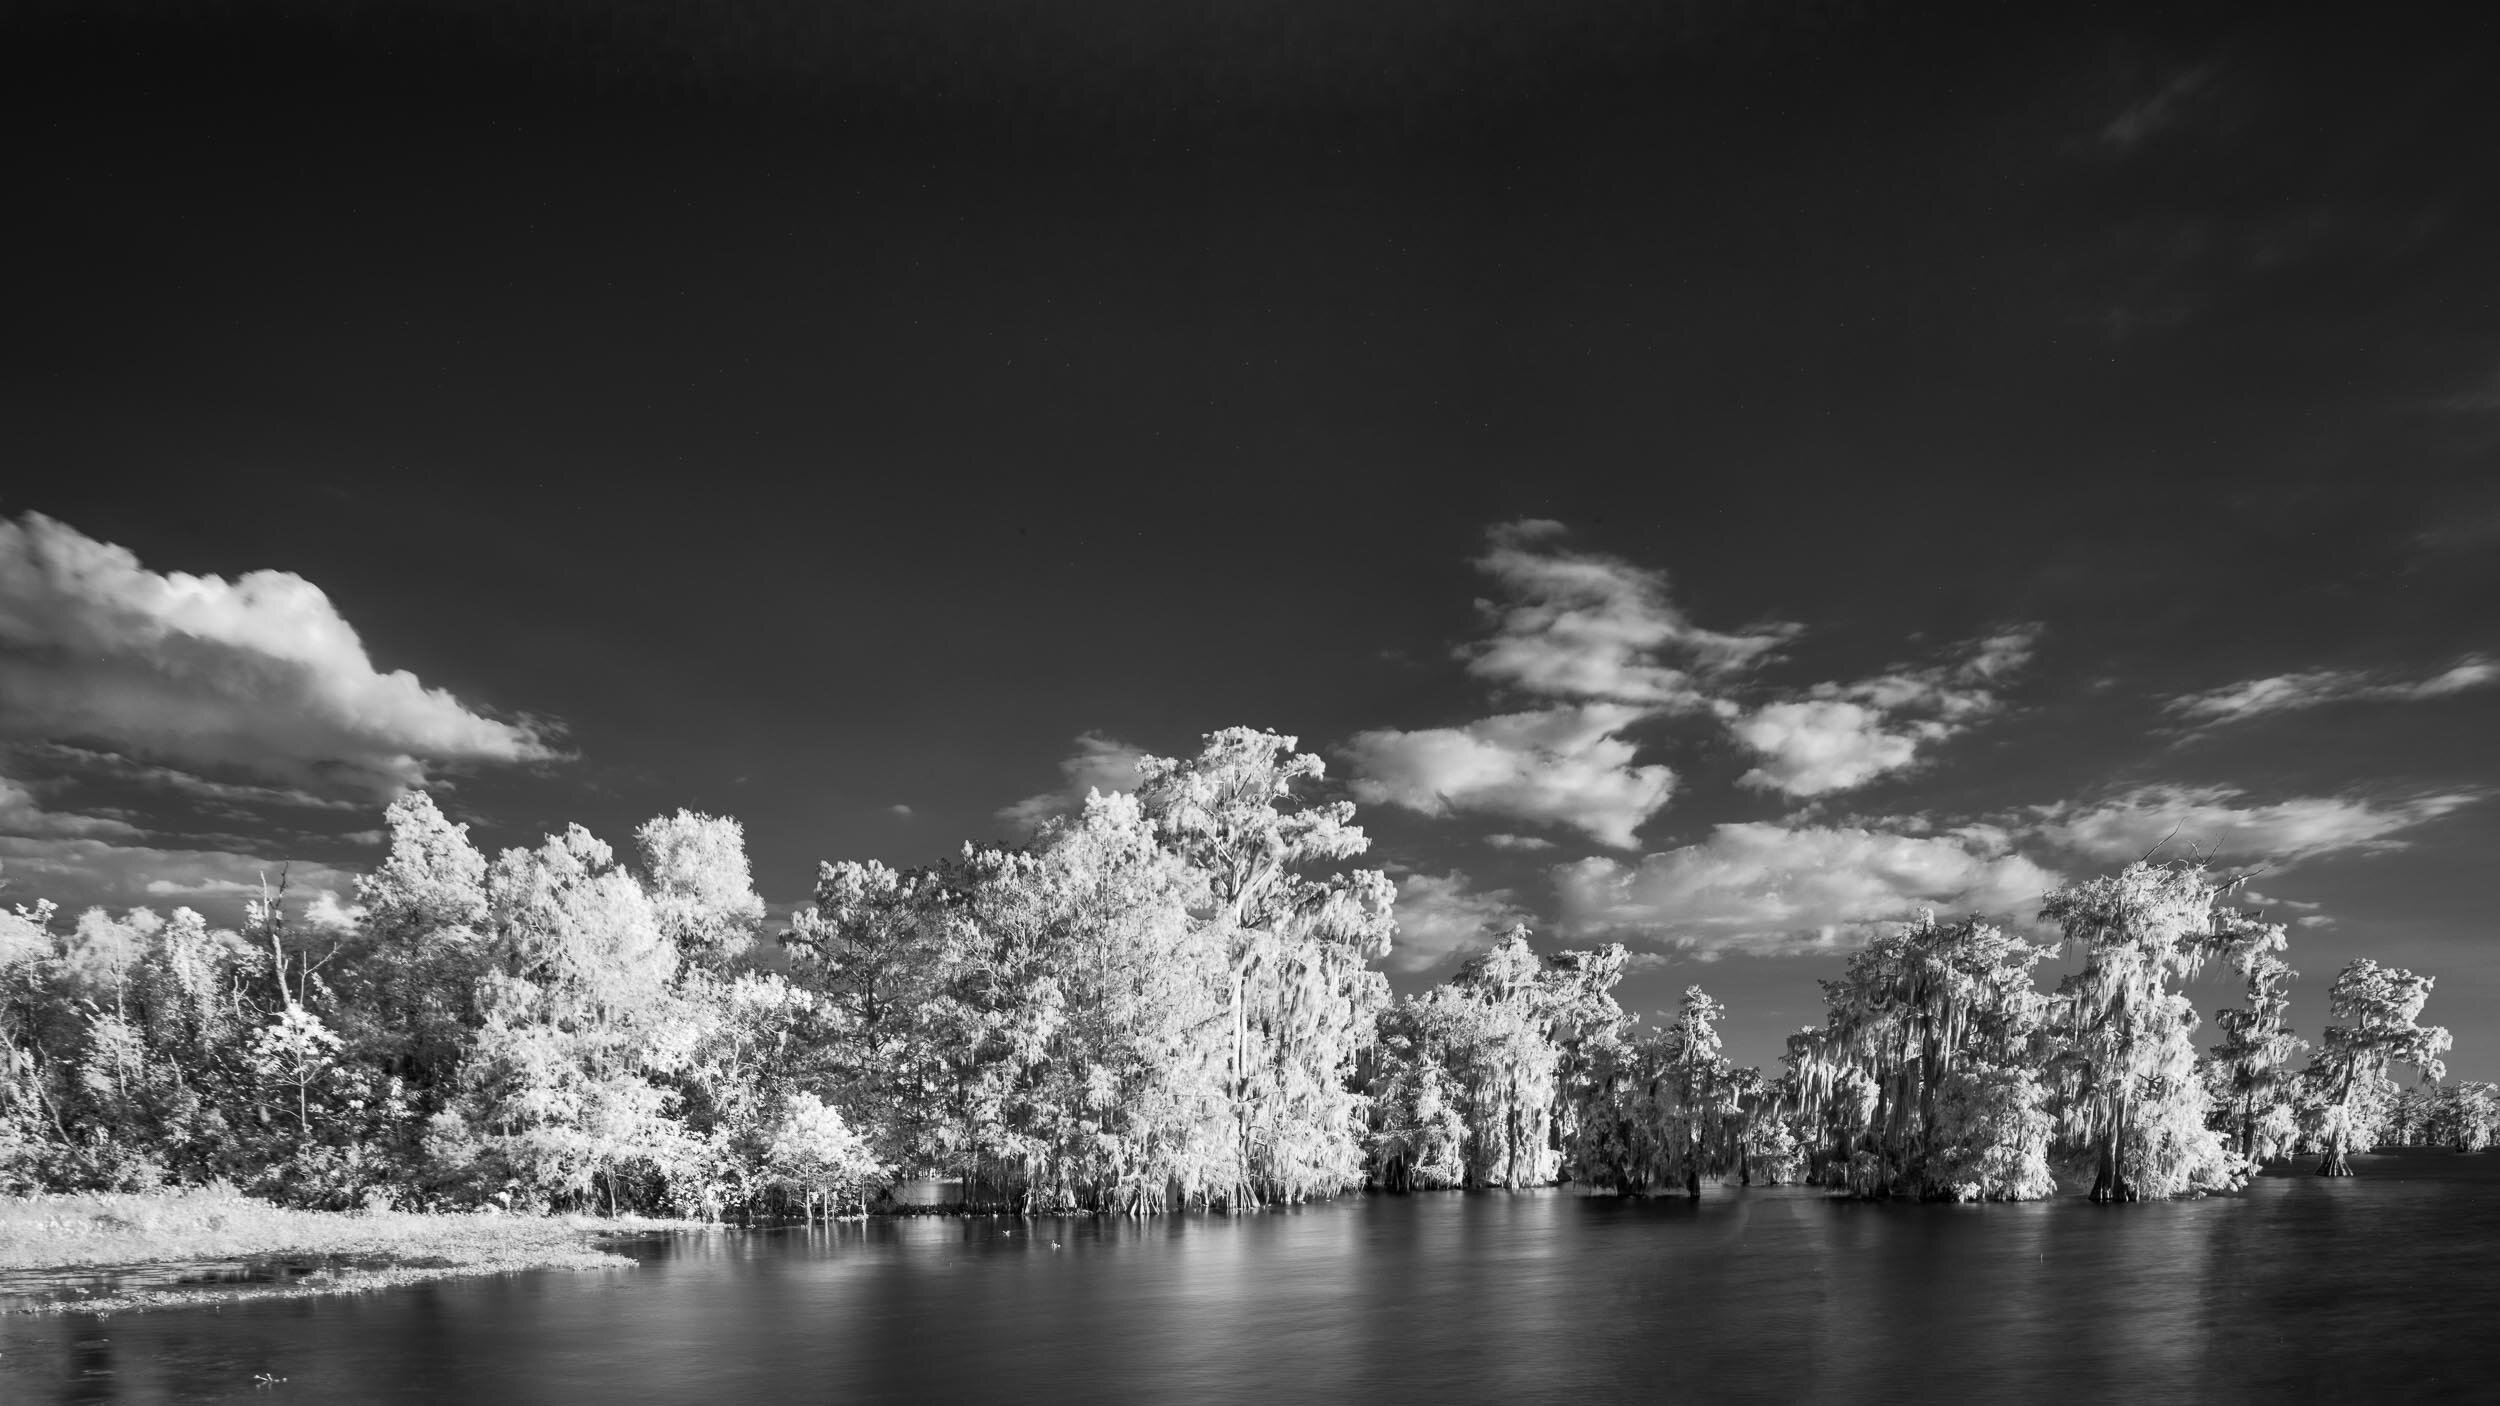 IR Panoramic Image October 9th, 2019